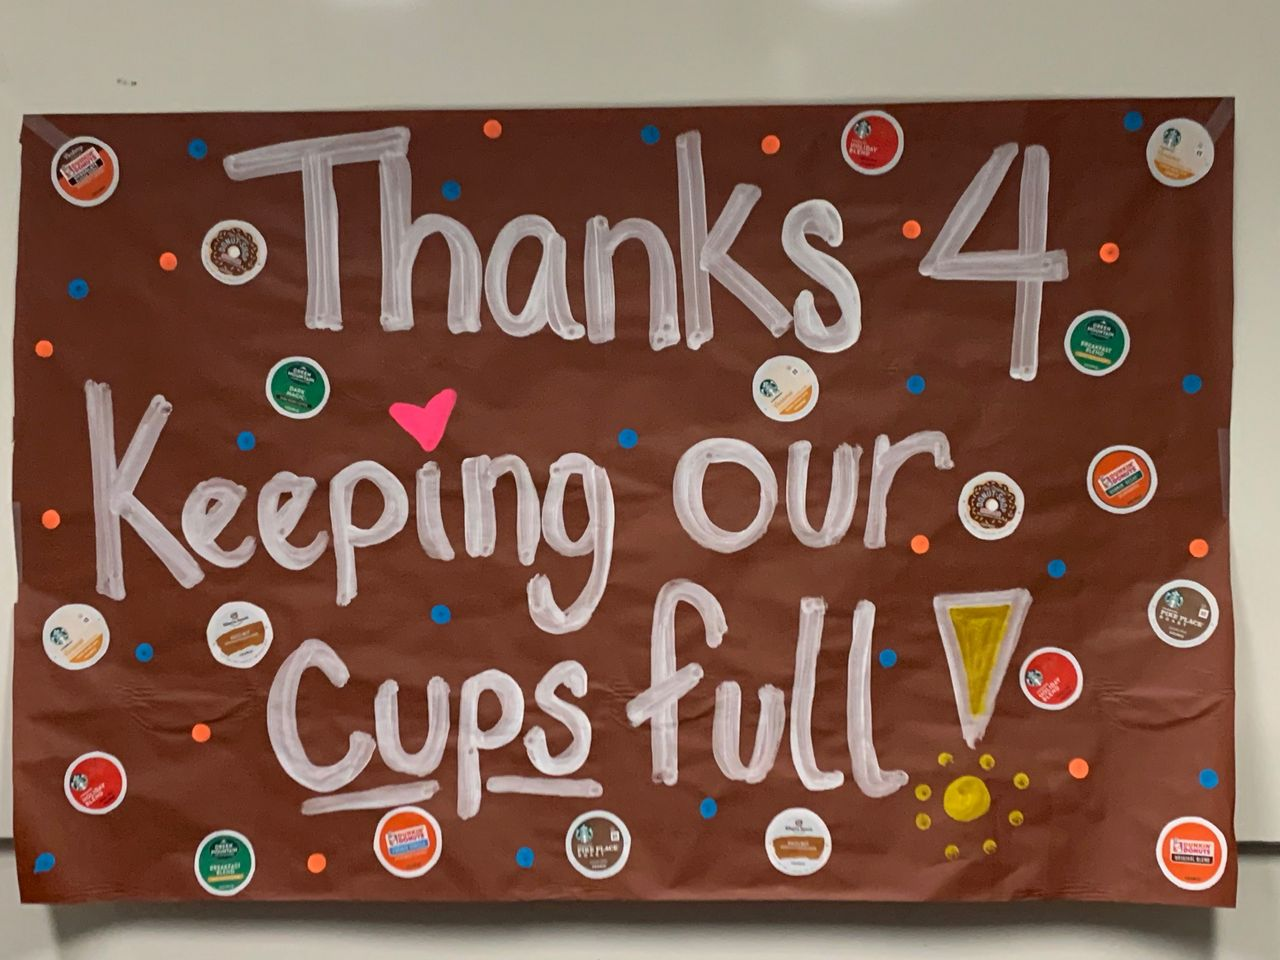 Thanks 4 Keeping Our Cups Full sign.